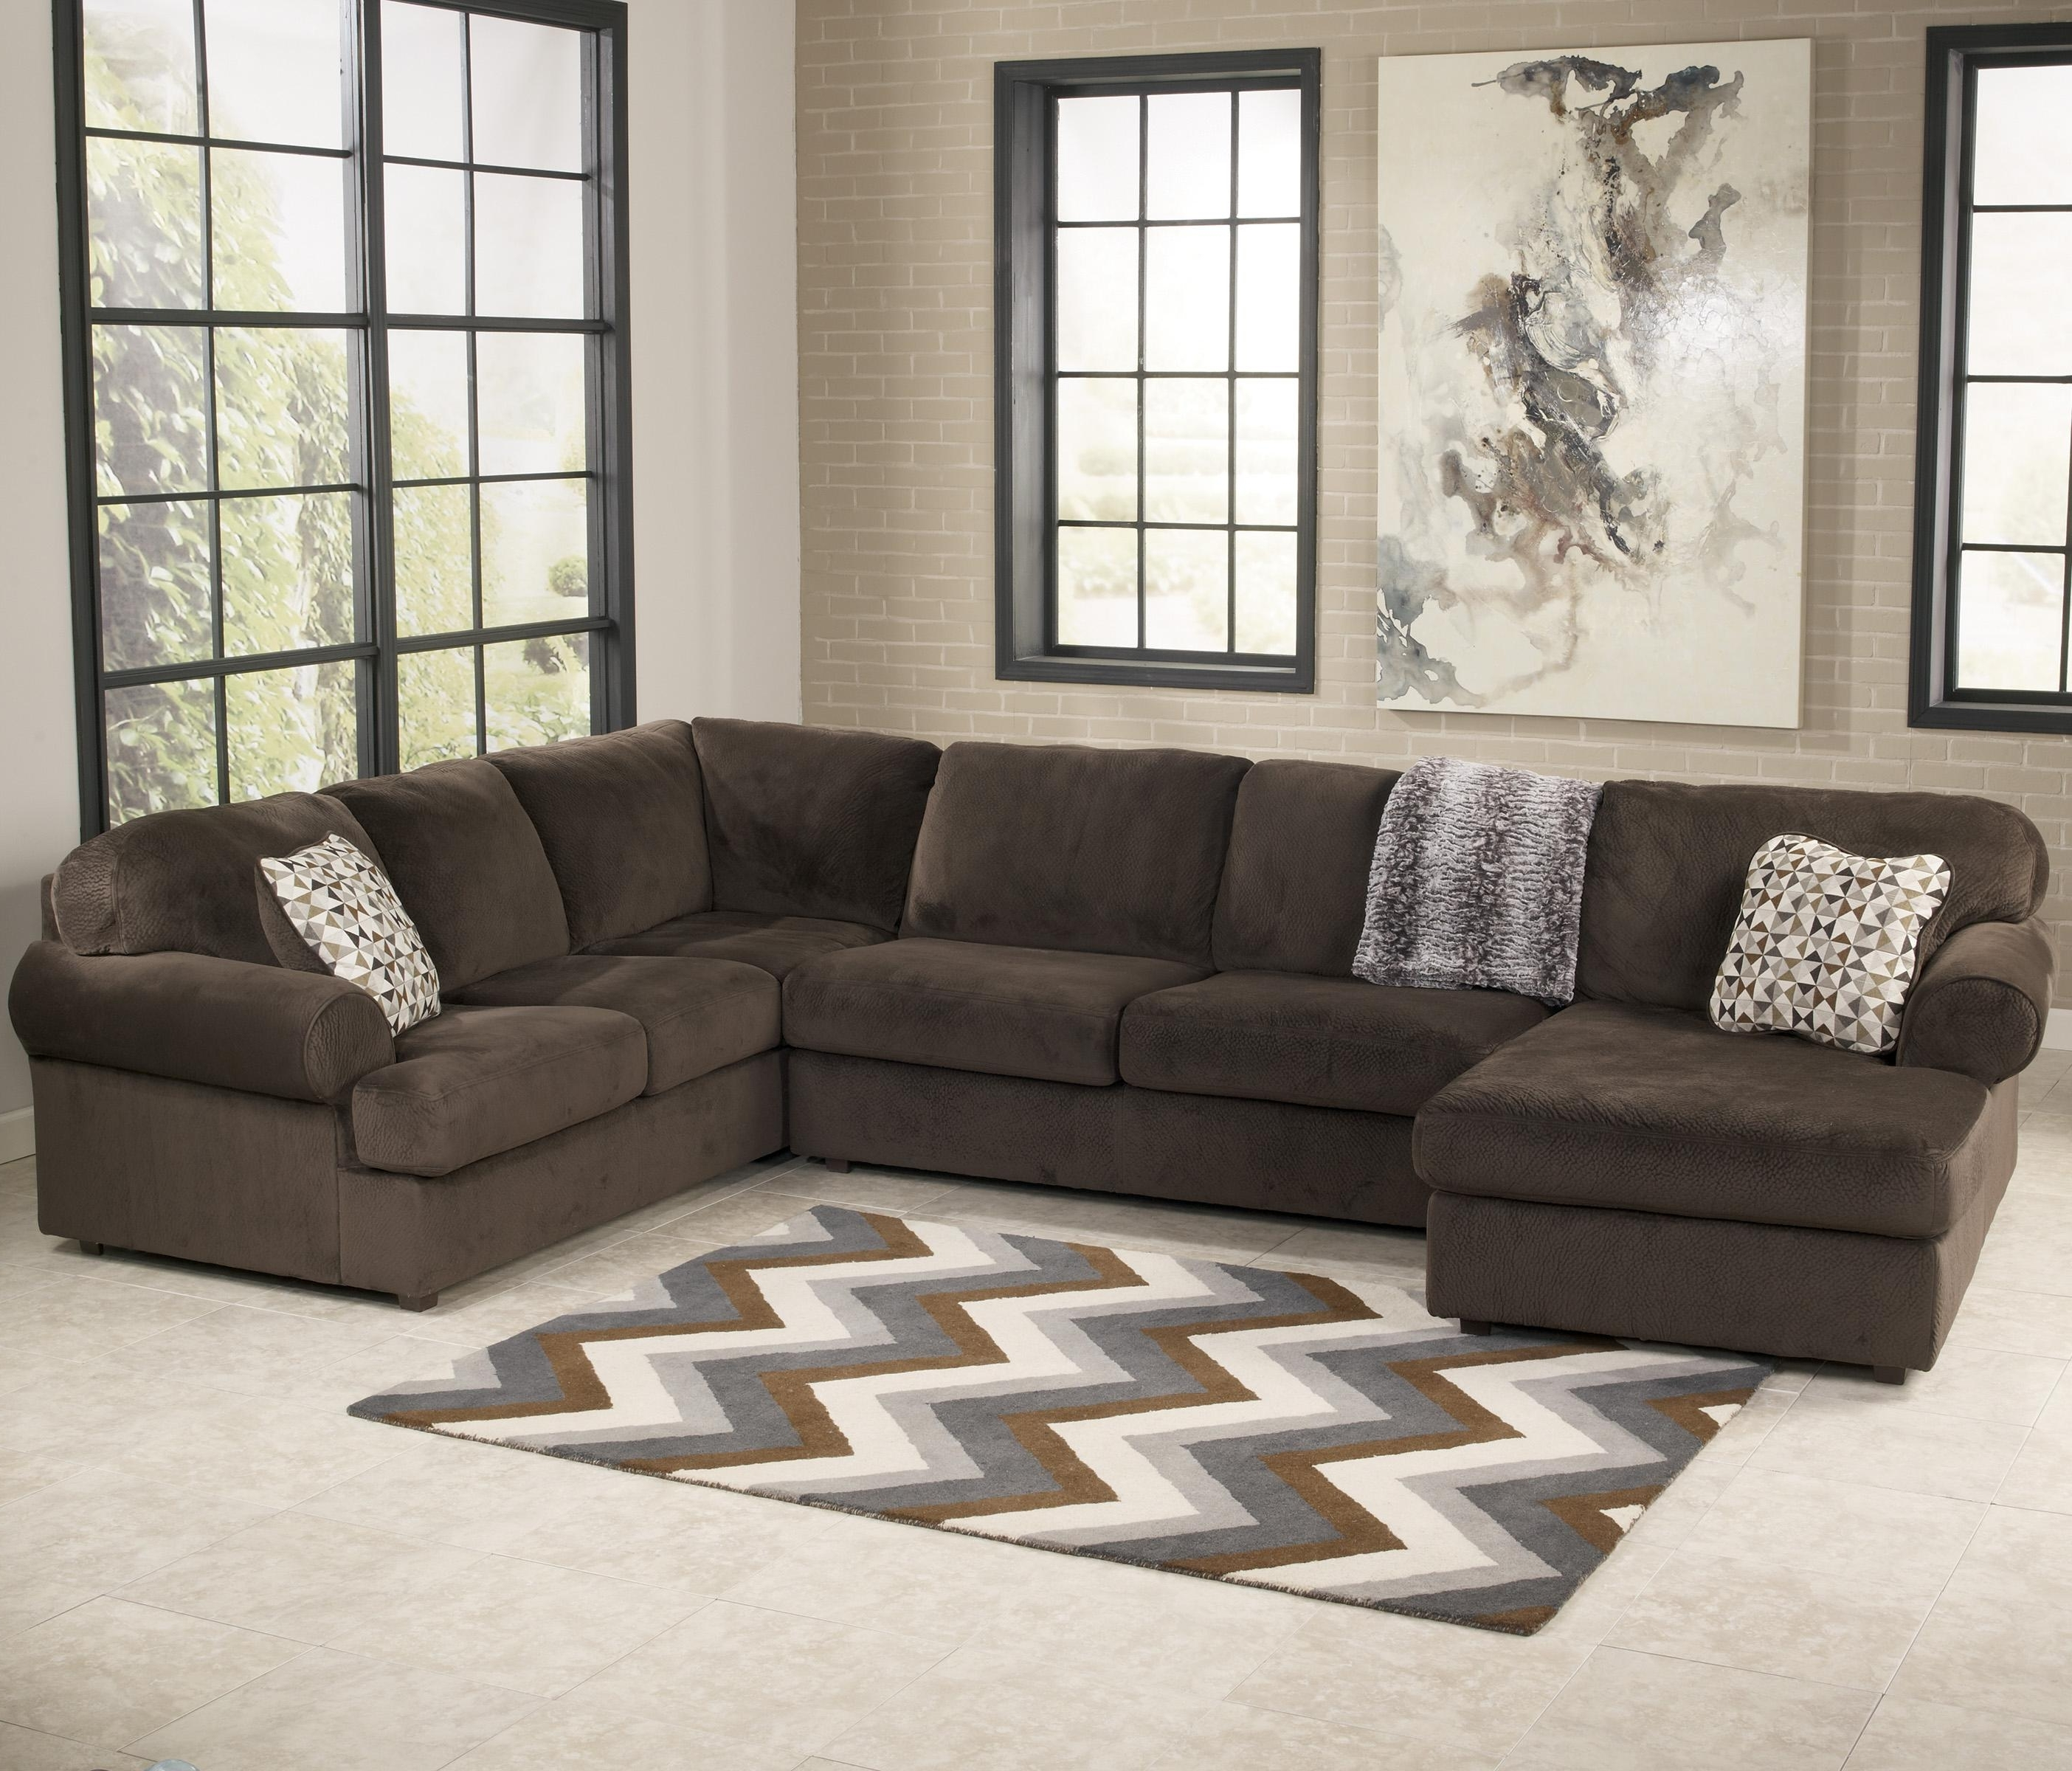 Preferred Sectional Sofa (View 20 of 20)